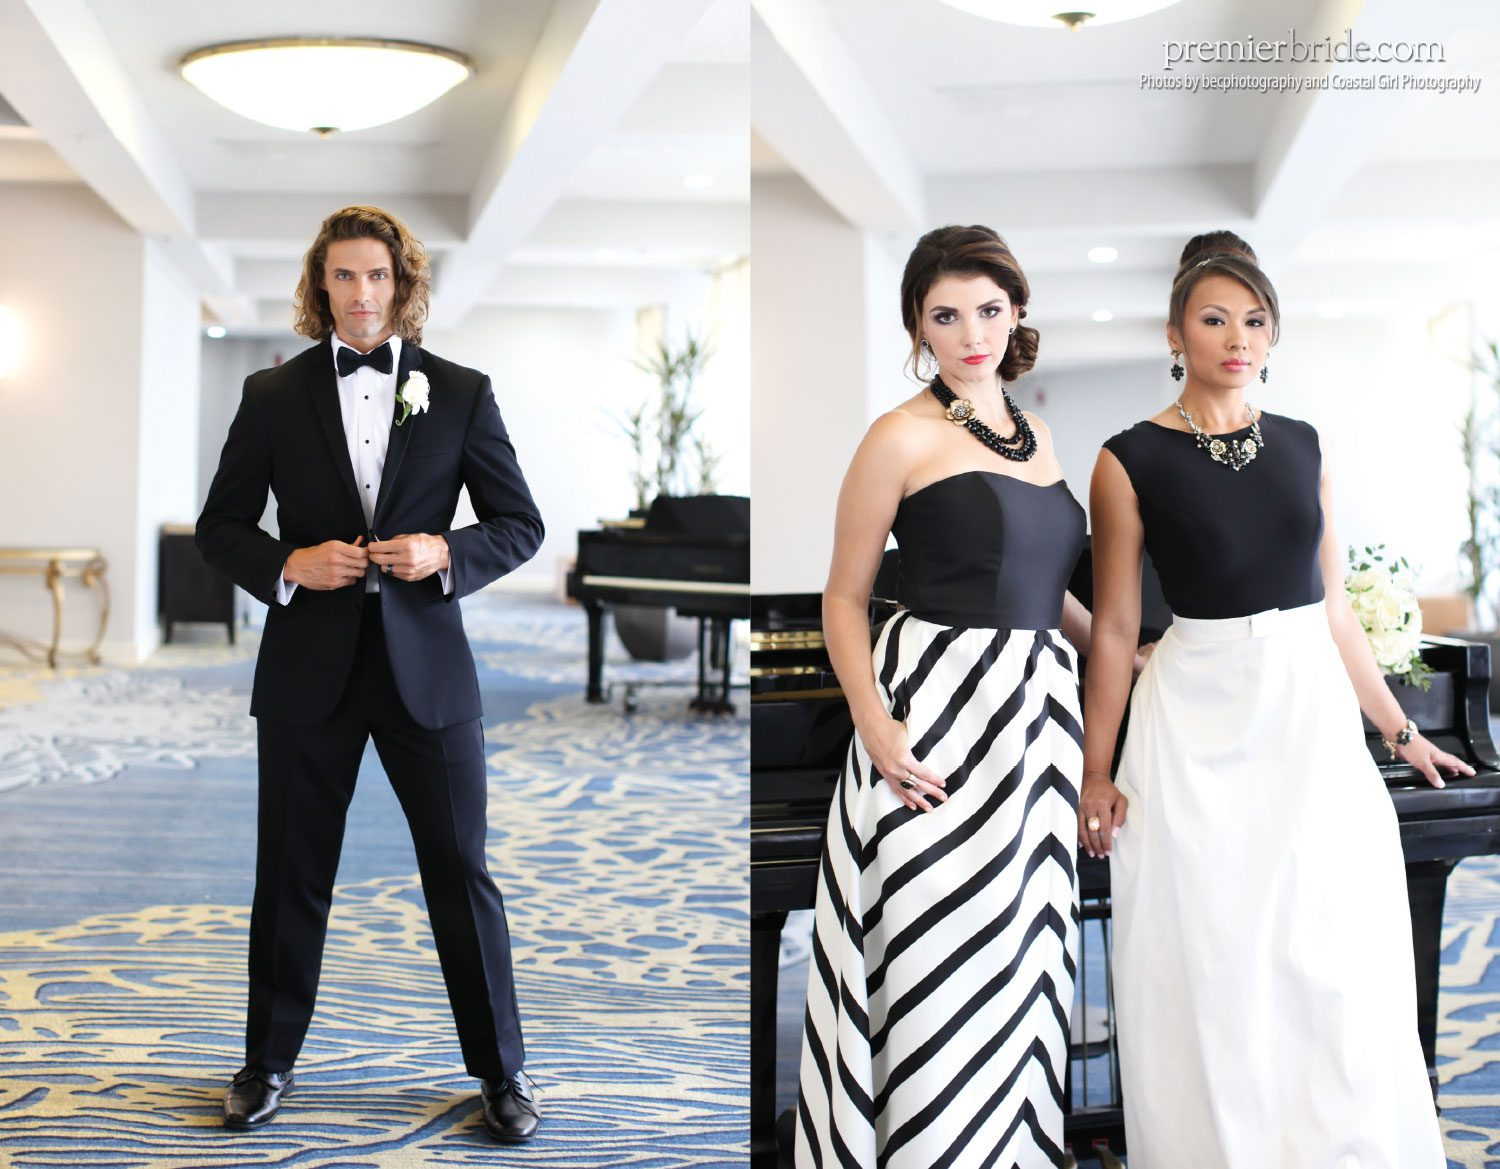 Michaels Formalwear & Bridal, Black Tie Formals, photos by becphotography